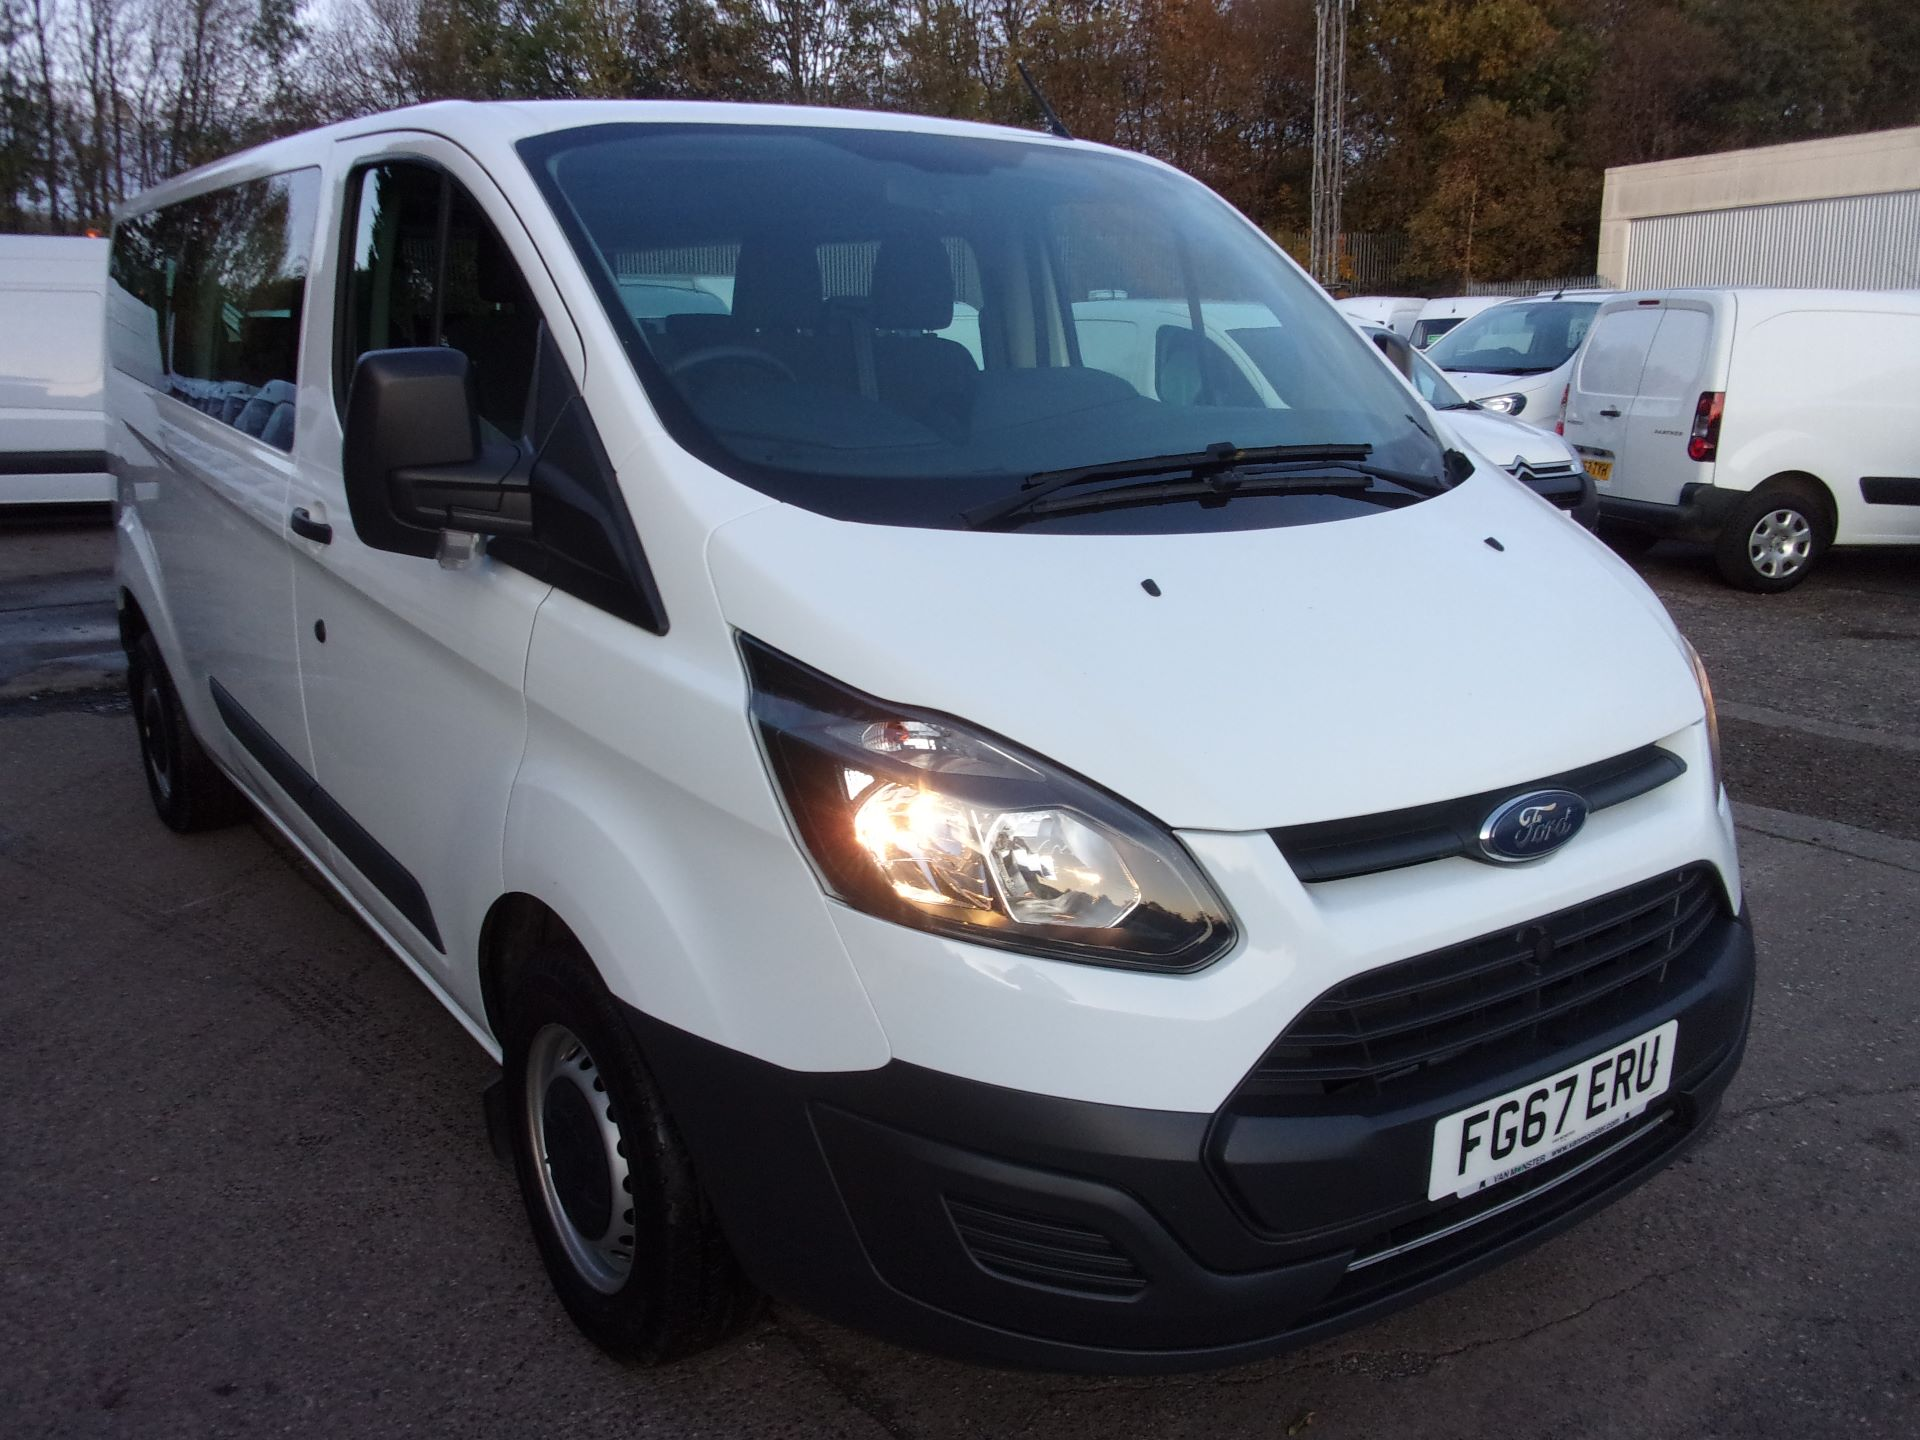 2017 Ford Transit Custom 310 L2 DIESEL FWD 2.0 TDCI 130PS LOW ROOF KOMBI EURO 6 (FG67ERU)